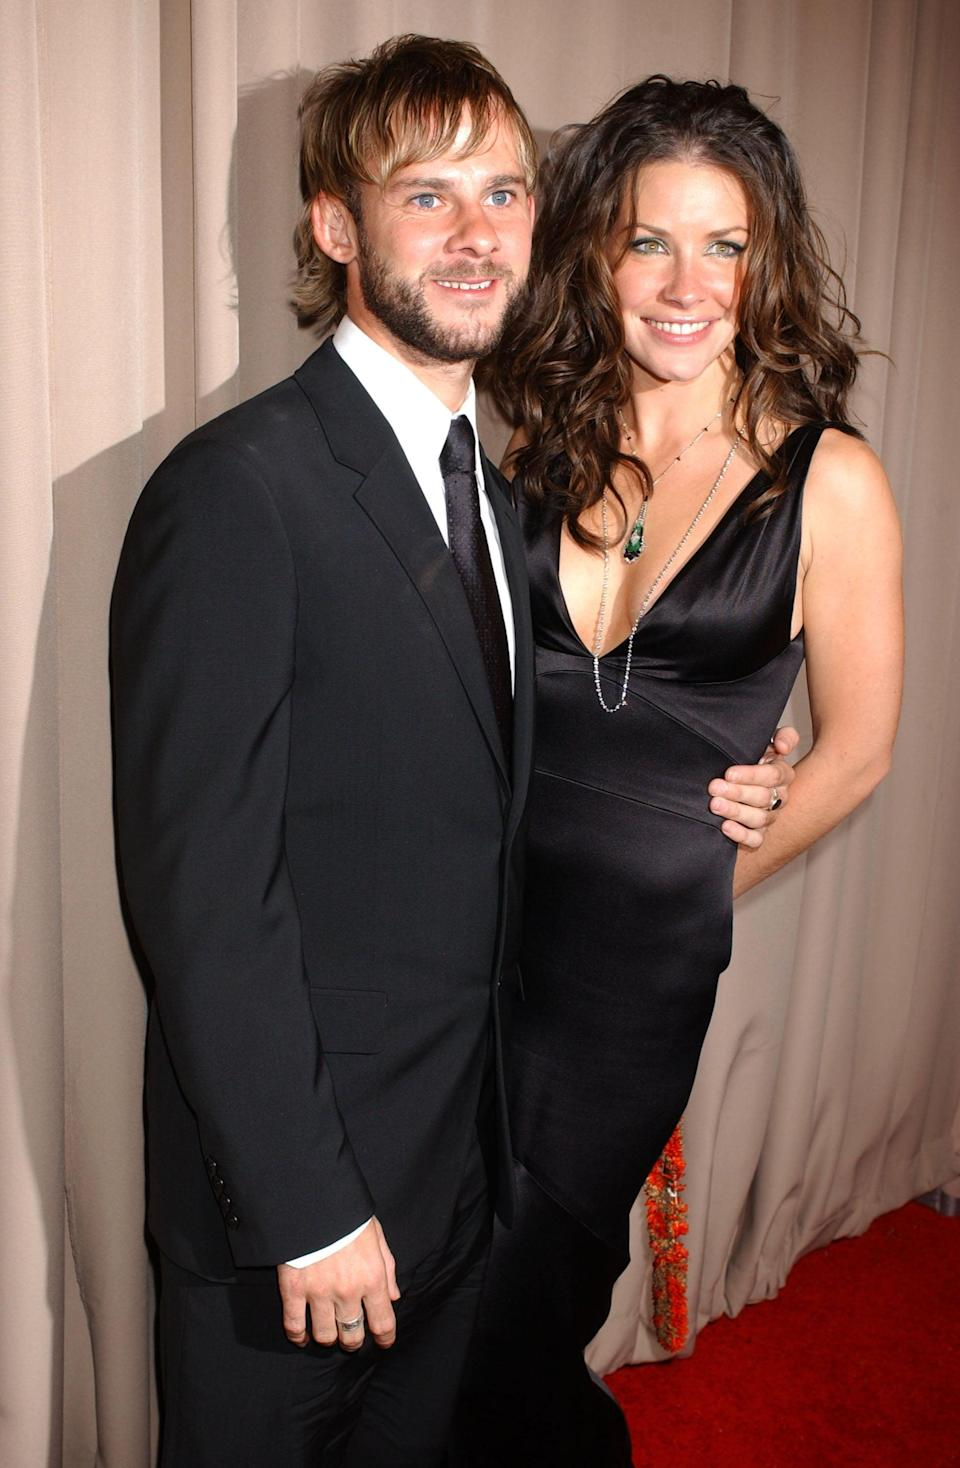 """<p>Evangeline and Dominic connected on the set of<strong> Lost</strong>, and though their characters, Kate and Charlie, never got together, the actors dated from 2004 to 2007. After deciding to call it quits, both actors remained on the series until its finale in 2010, although Dominic didn't appear in season five and only appeared in flashbacks in season six. </p> <p>The pair never explicitly commented on their breakup or their experience working together on <strong>Lost </strong>afterward, but Dominic <em>did </em>seem to shade Evangeline years later. In 2013, <a href=""""http://twitter.com/domswildthings/status/413398258979860481"""" class=""""link rapid-noclick-resp"""" rel=""""nofollow noopener"""" target=""""_blank"""" data-ylk=""""slk:Dominic replied to a tweet"""">Dominic replied to a tweet</a> that read, """"Evangeline looked unreal in The Hobbit, man oh man,"""" writing, """"Nah. I don't date cheaters."""" </p>"""